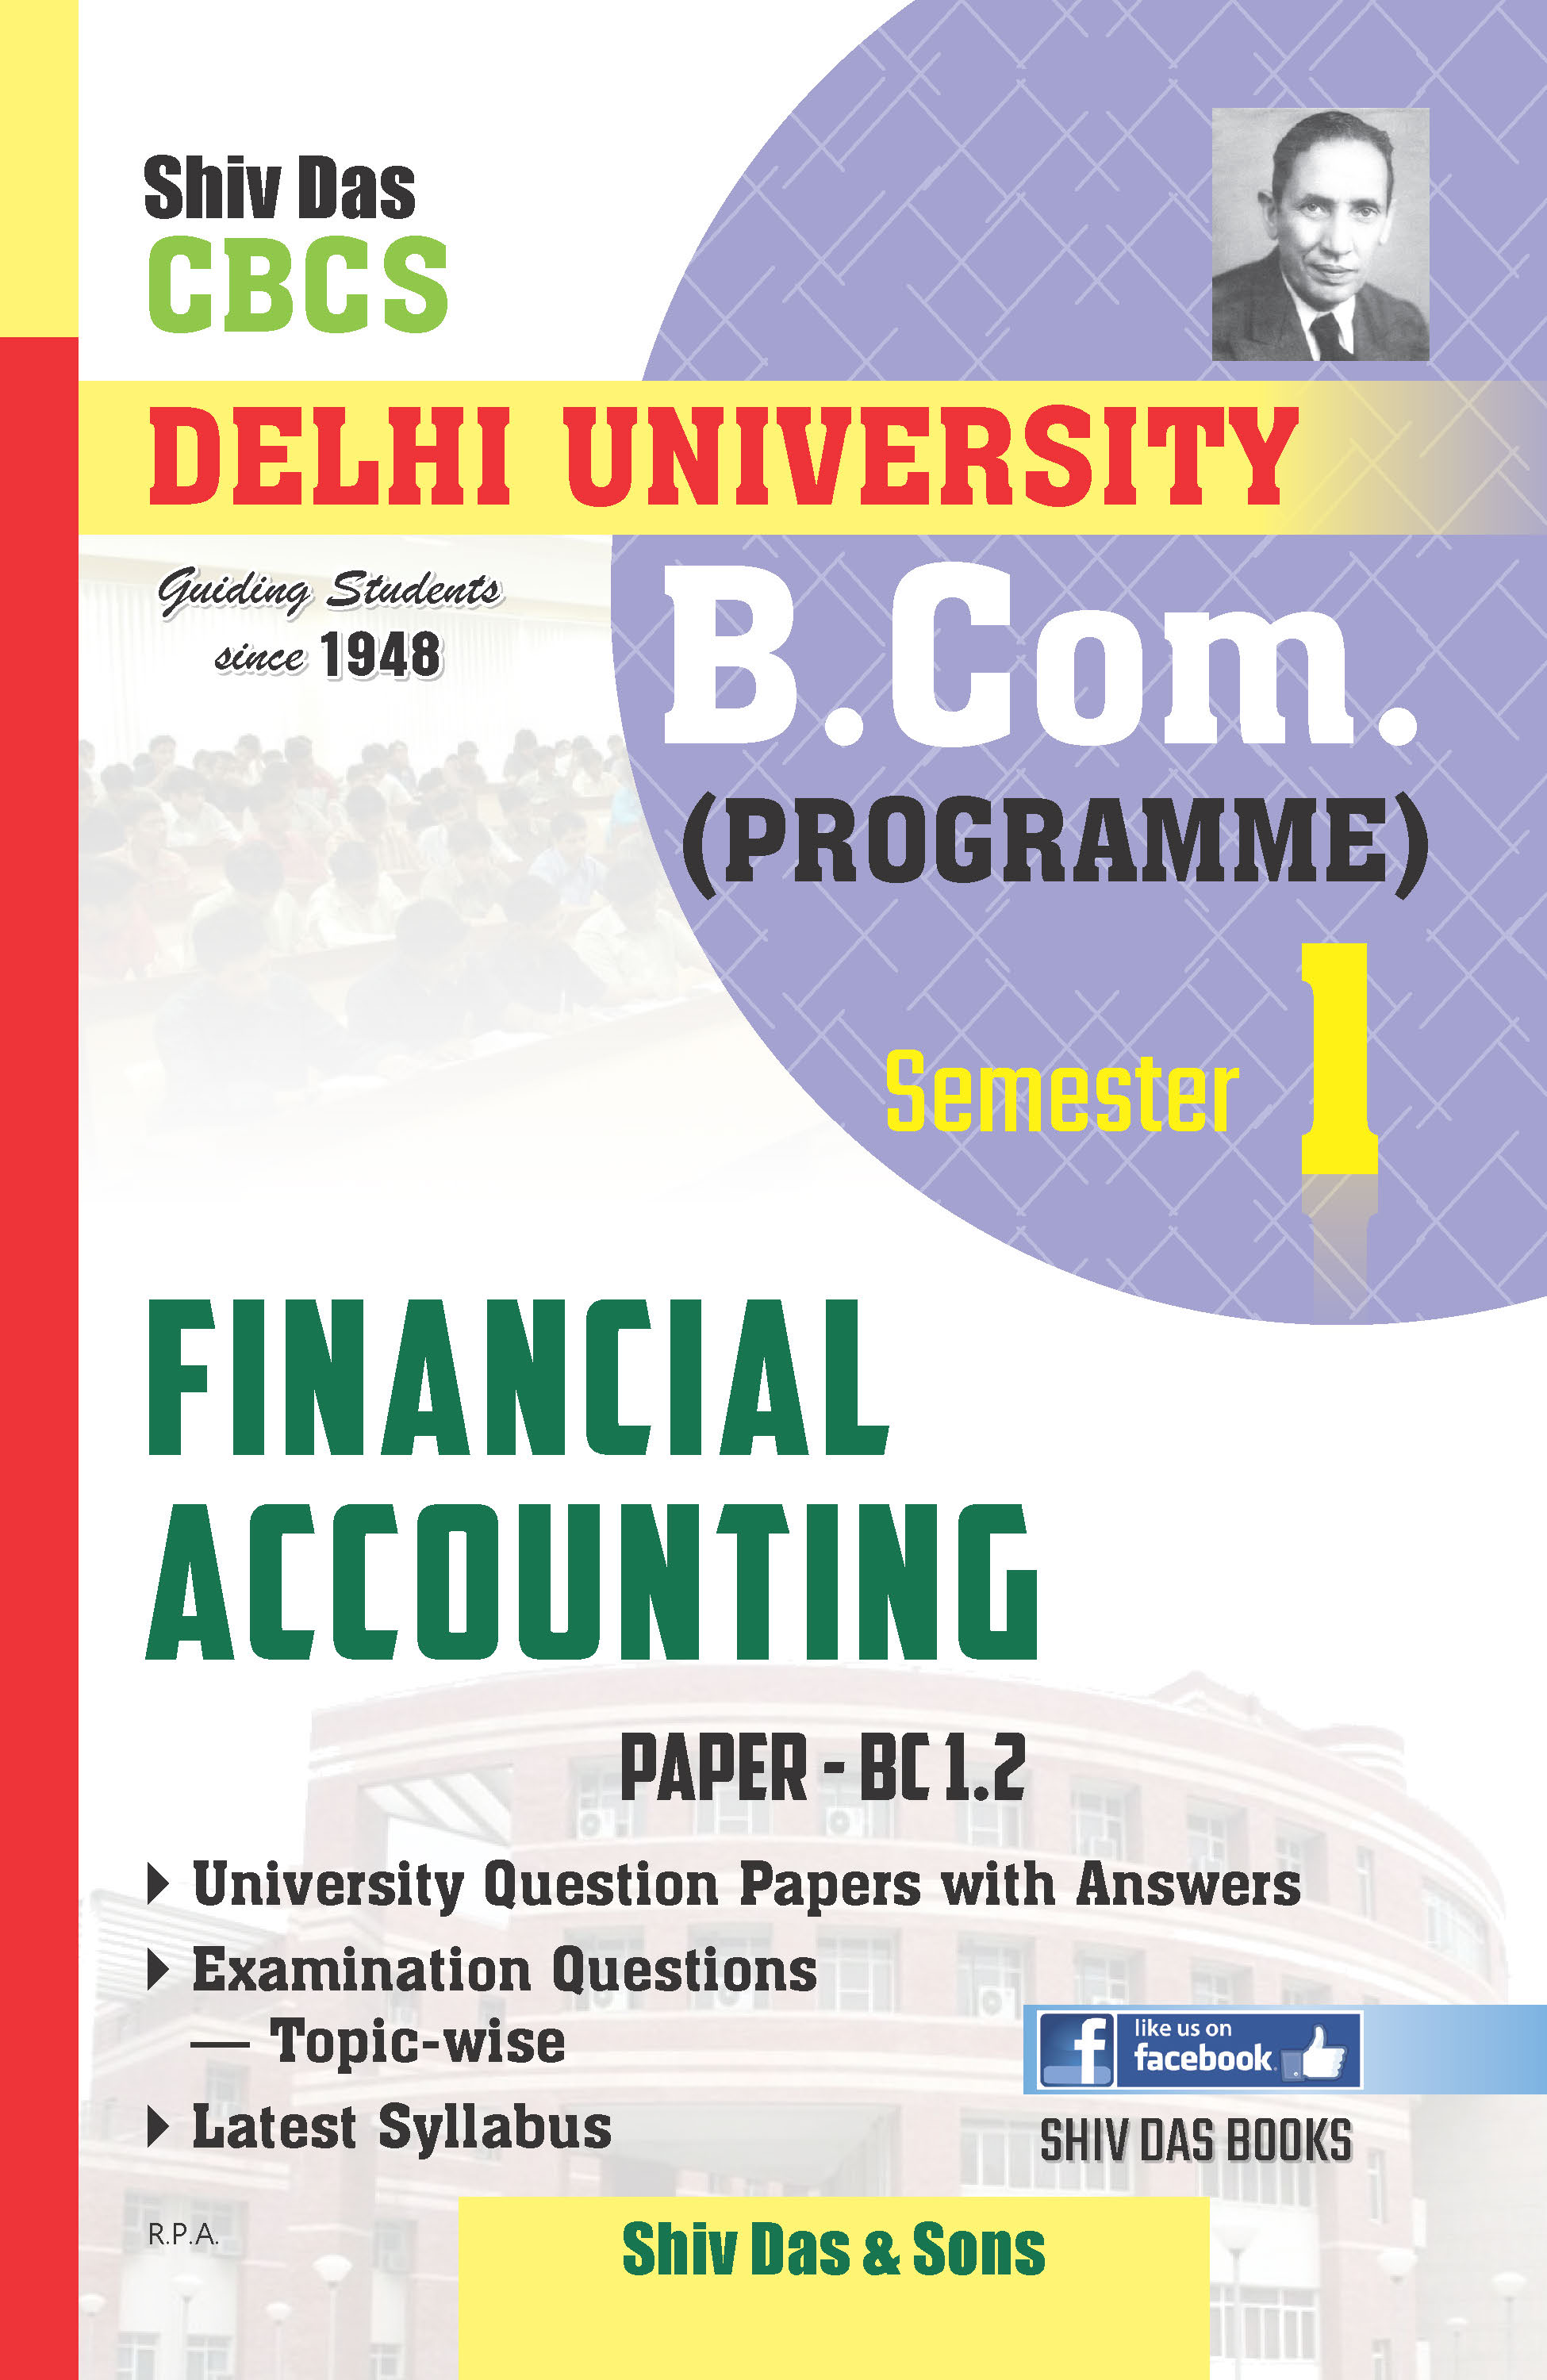 B.Com Prog. Semester-1 Financial Accounting